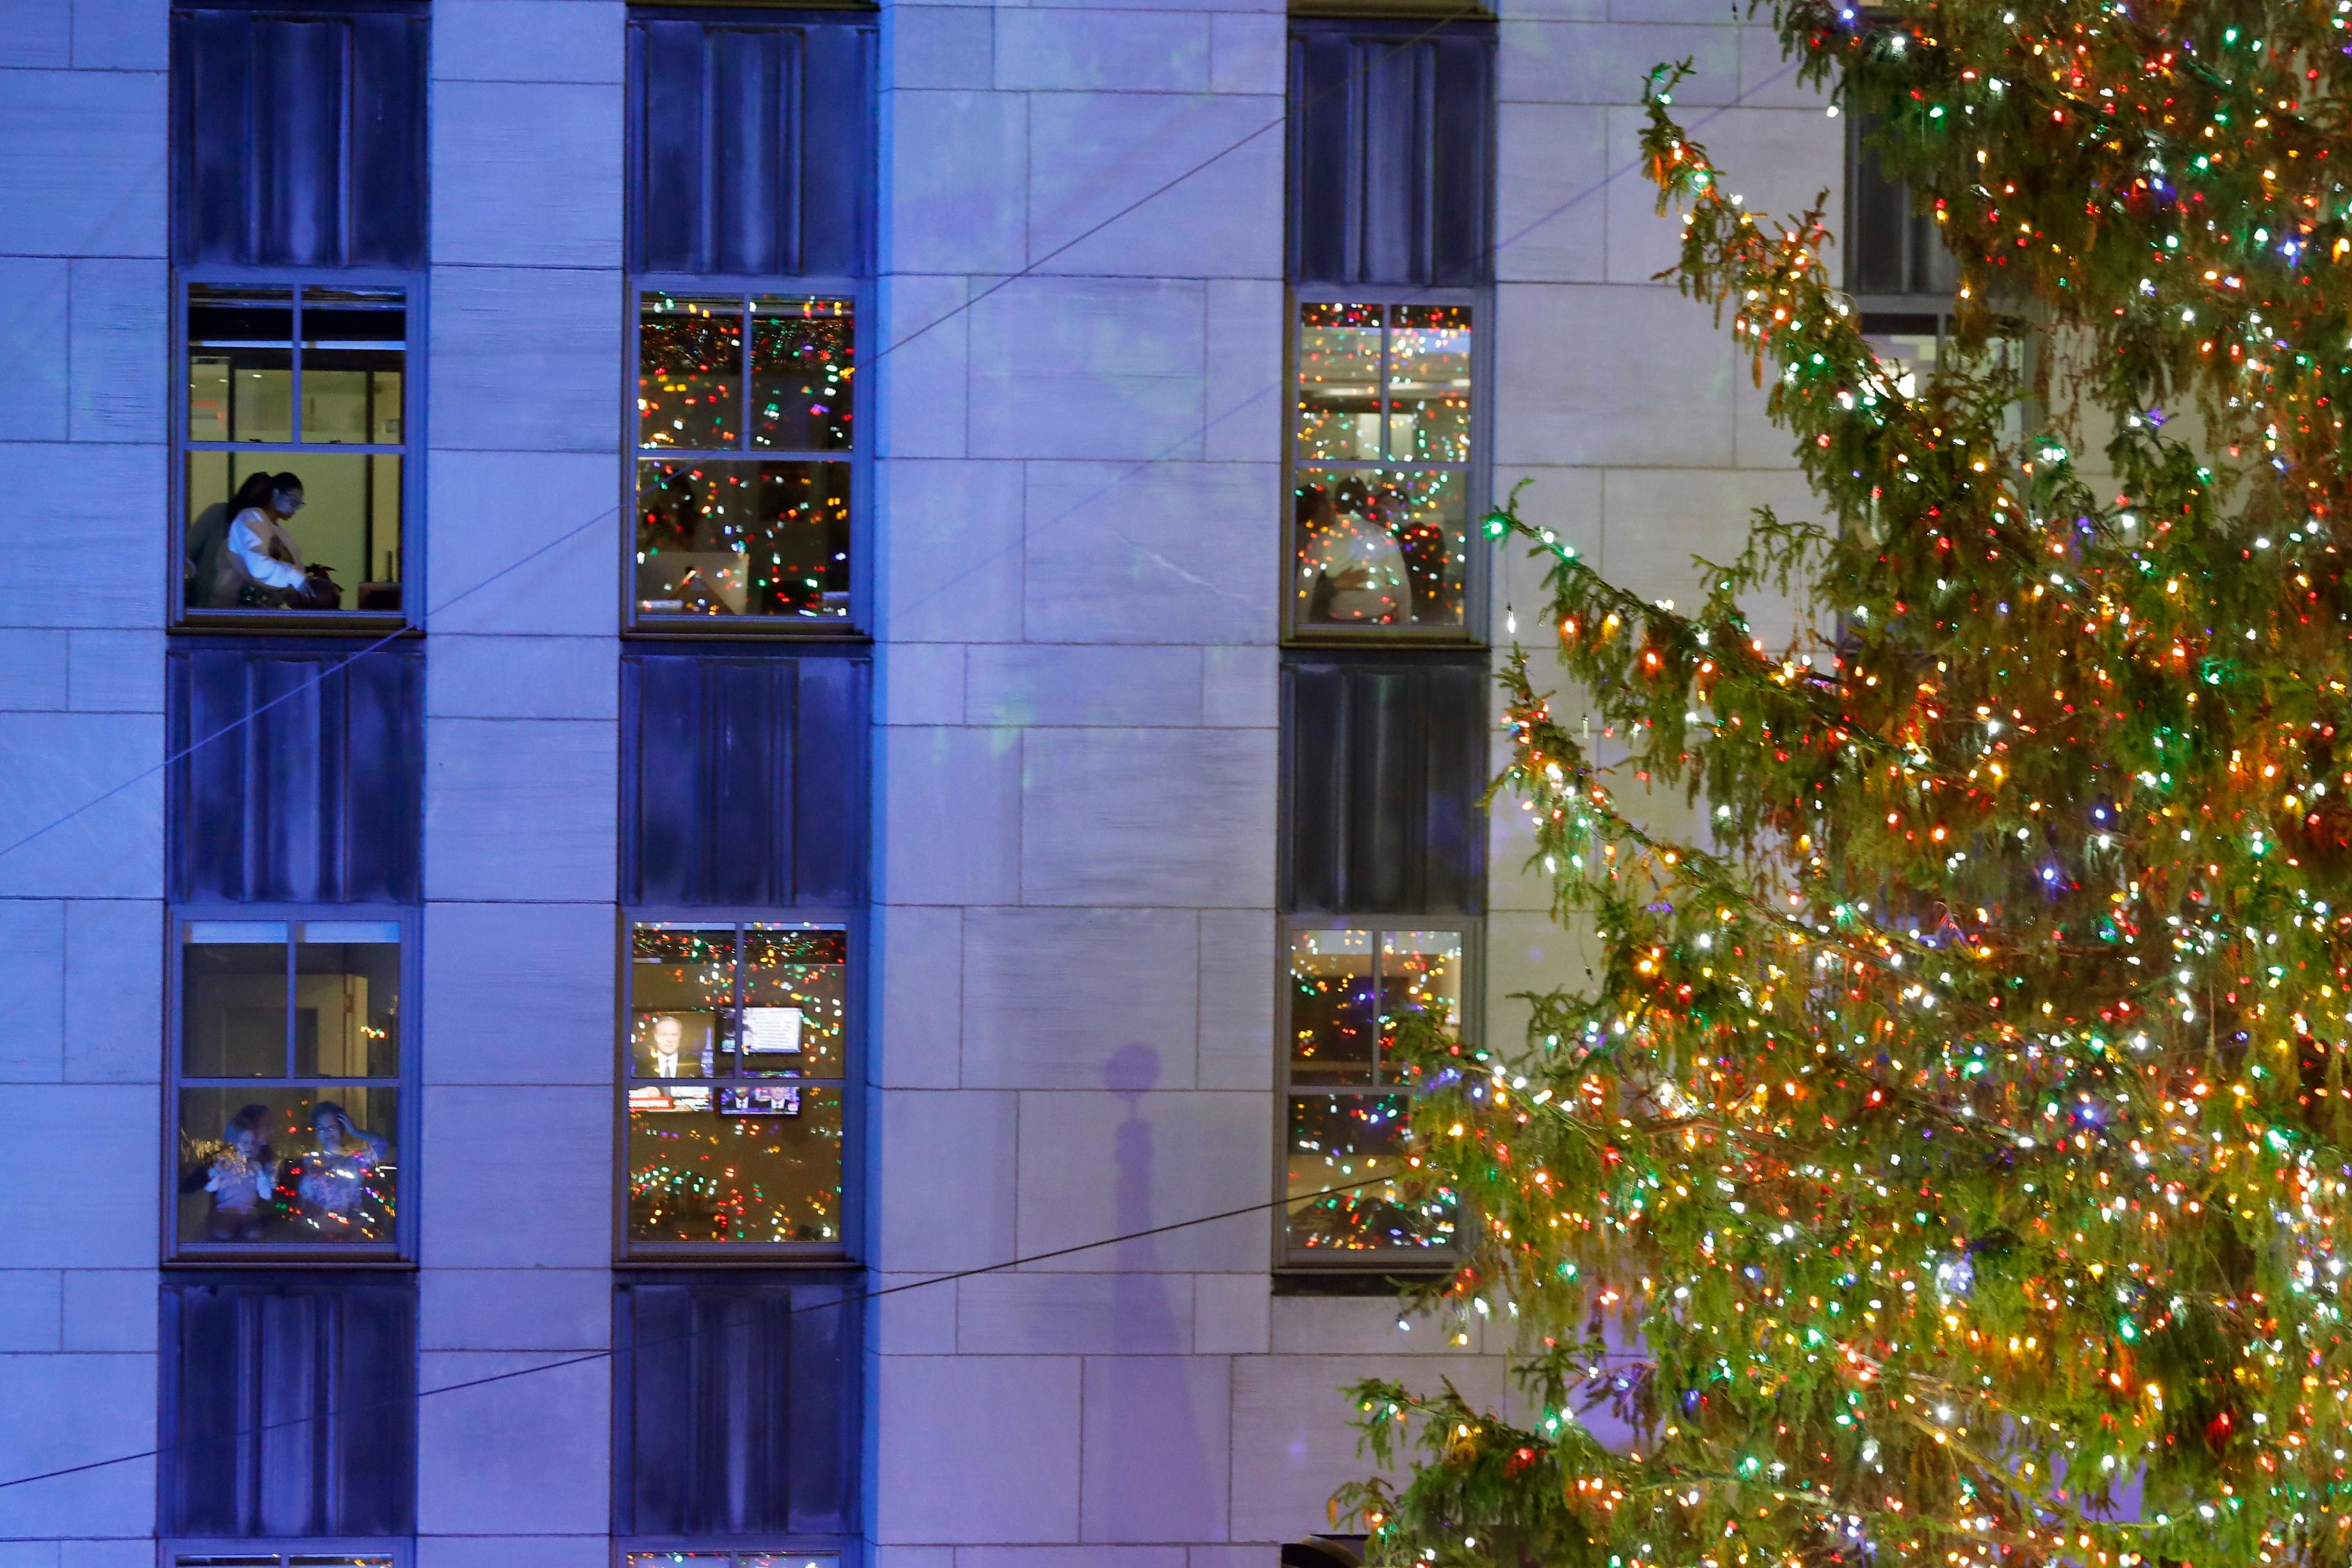 Workers are seen in a window moments after 87th annual Rockefeller Center Christmas Tree was illuminated, Wednesday, Dec. 4, 2019, in New York. (AP Photo/Kathy Willens)